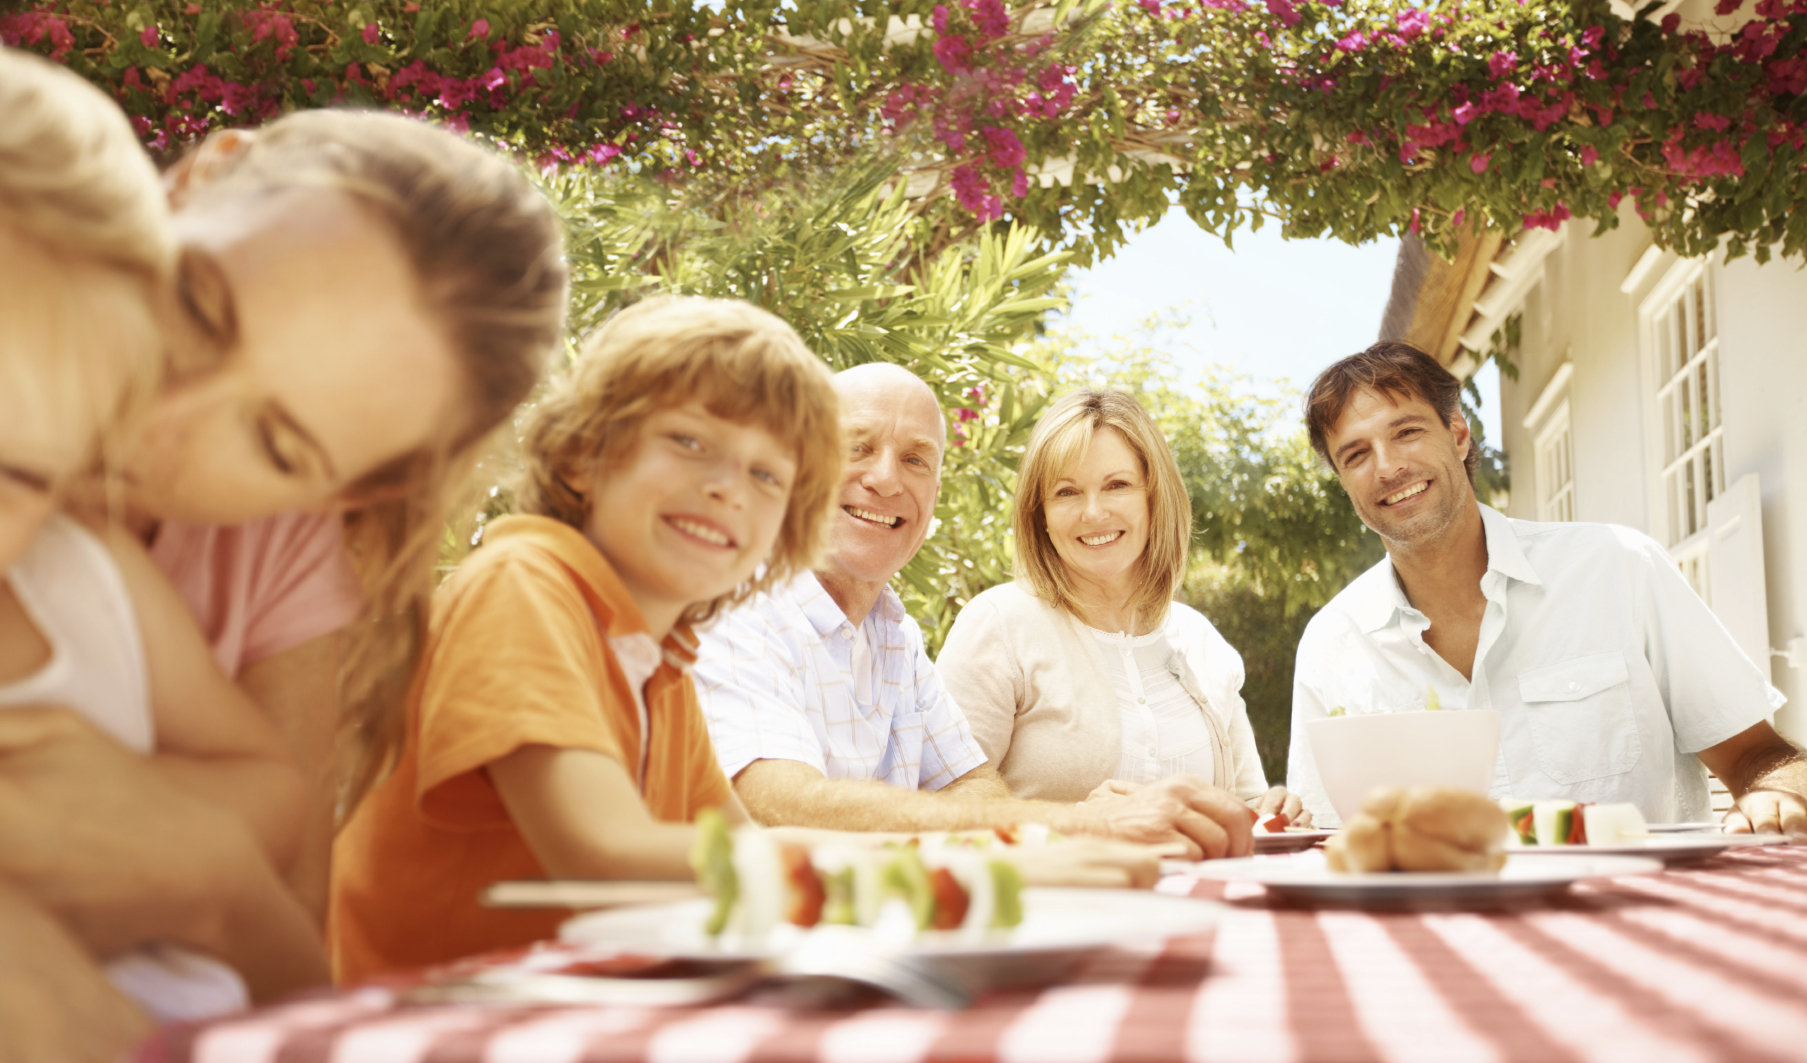 Family at a pinic - iStock